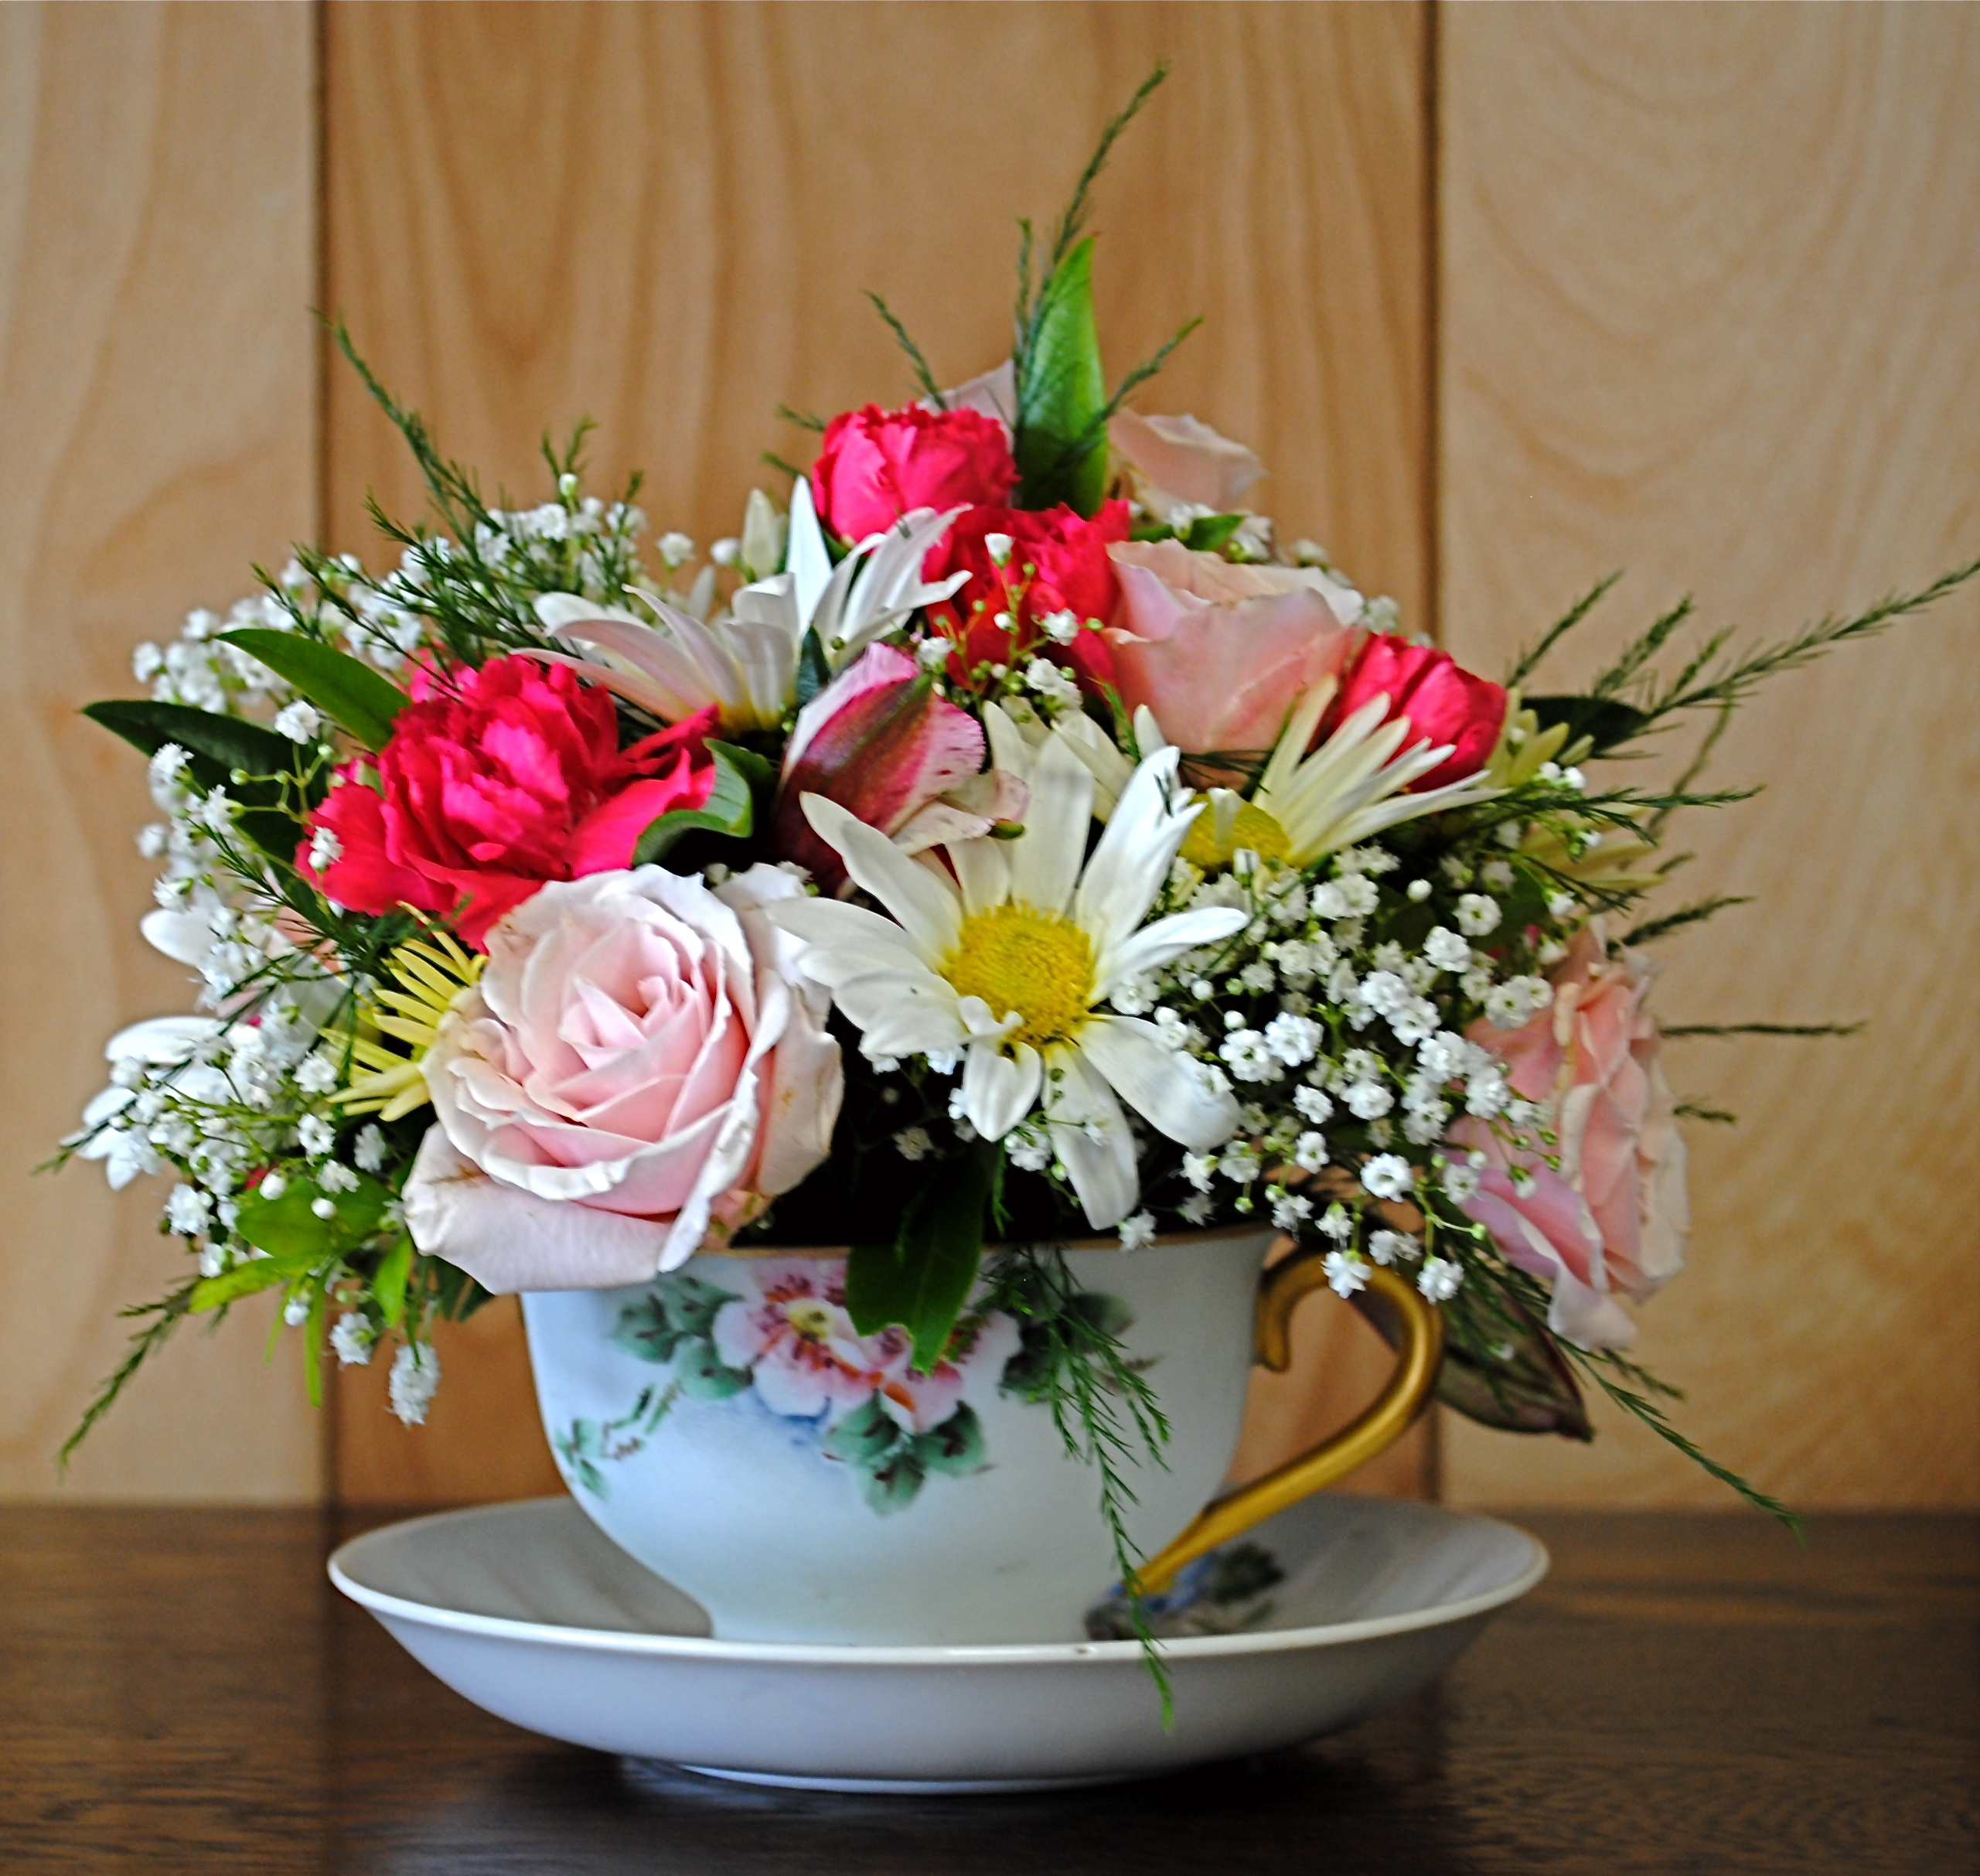 Teacup Arrangements: Flowers for That Special Lady Anytime of Year